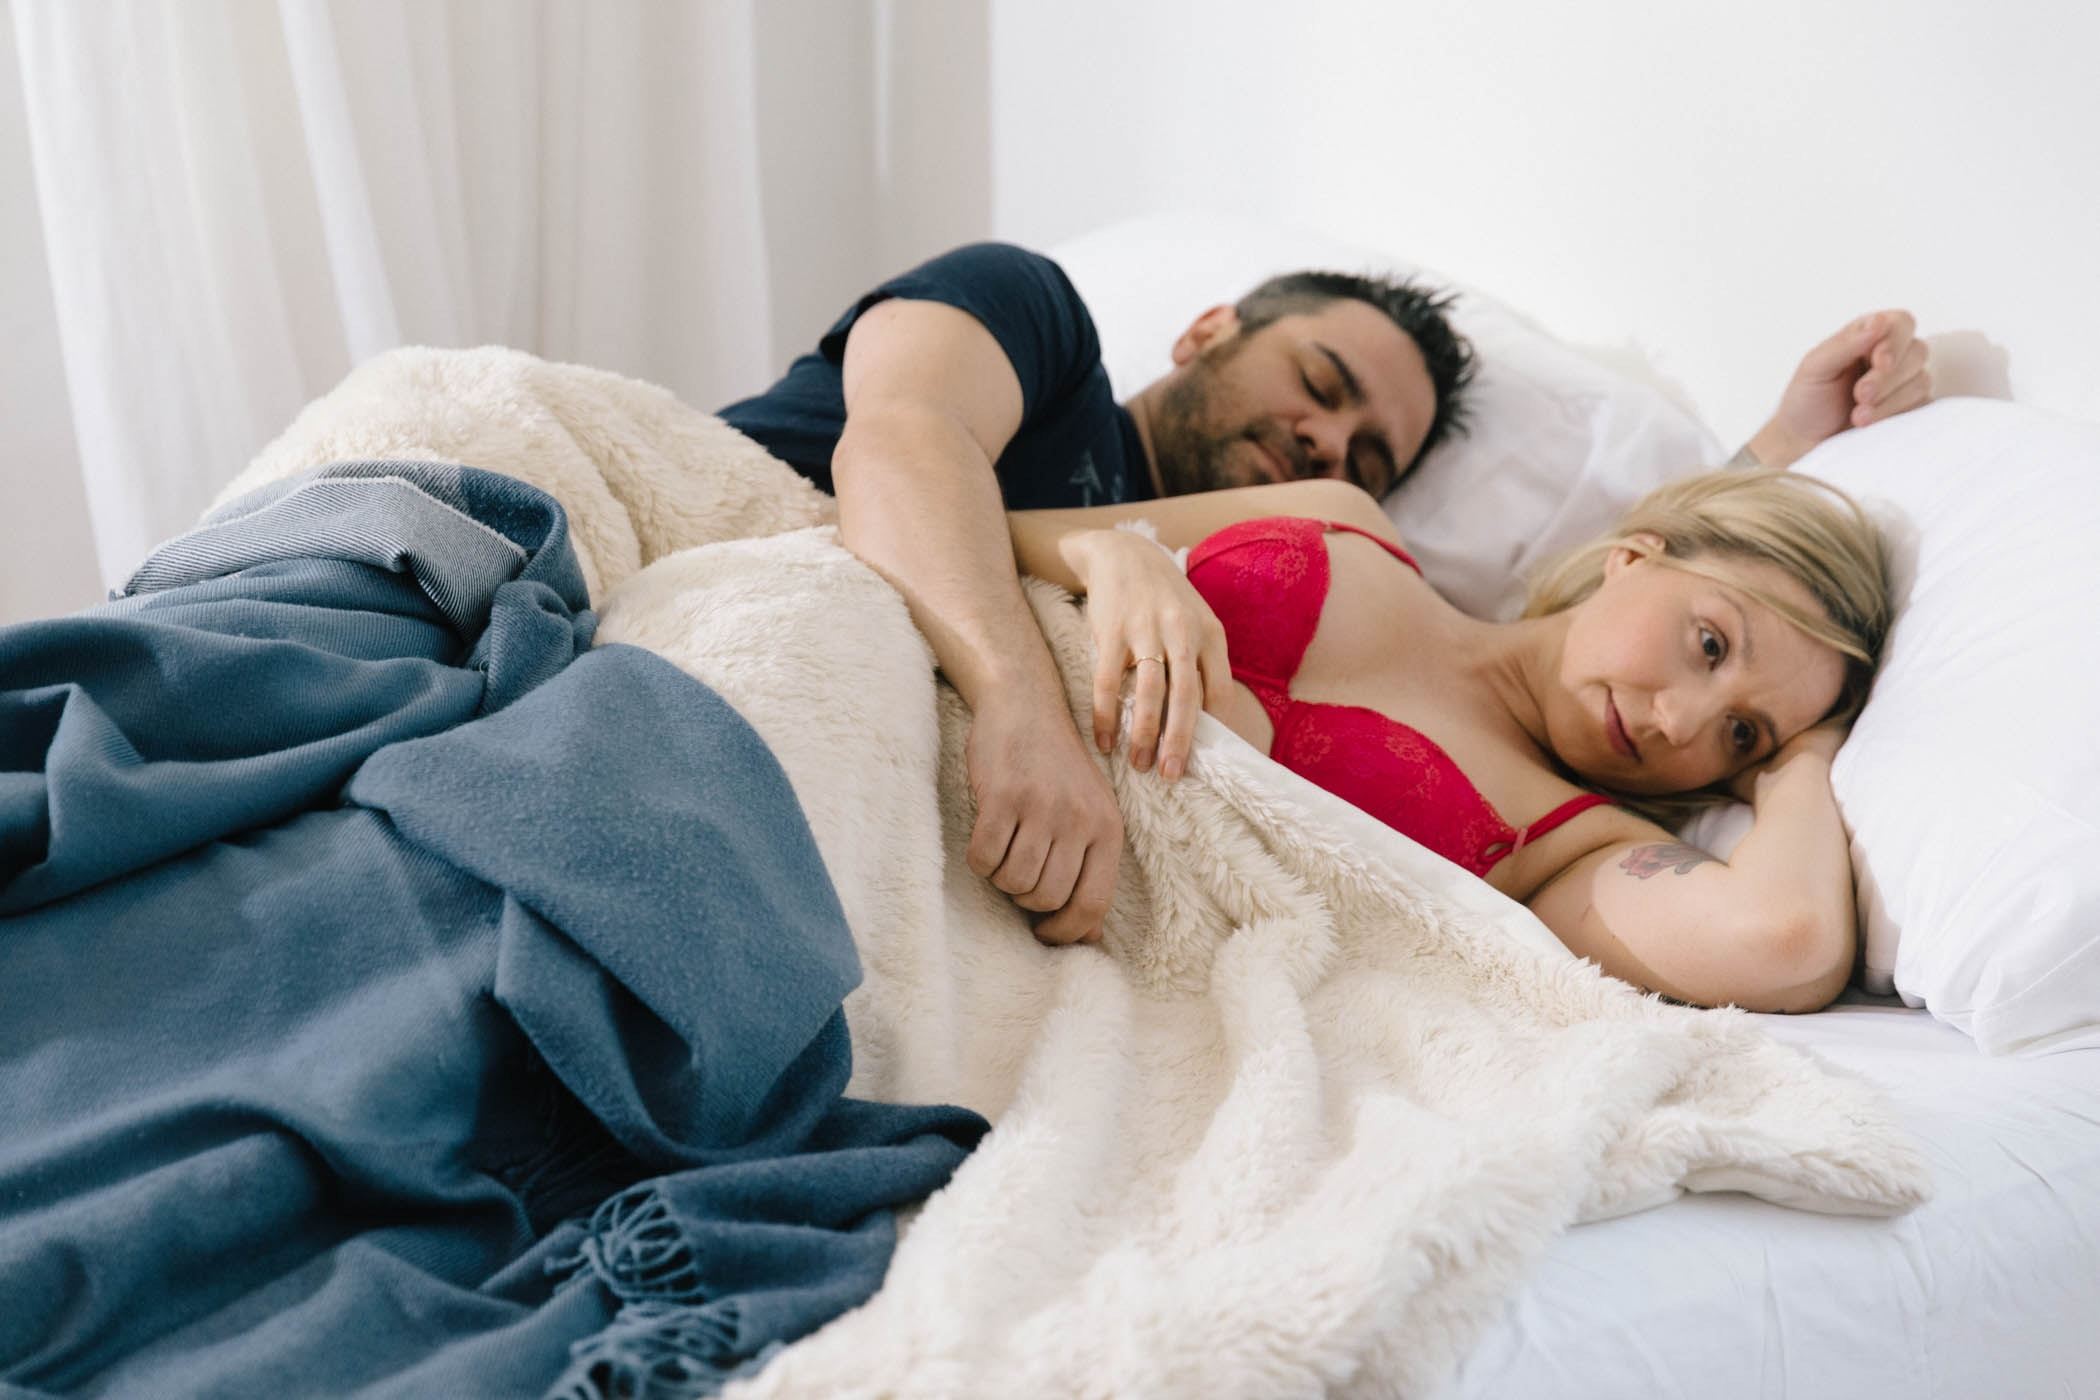 Lower abdominal pain during sexually active pregnancy